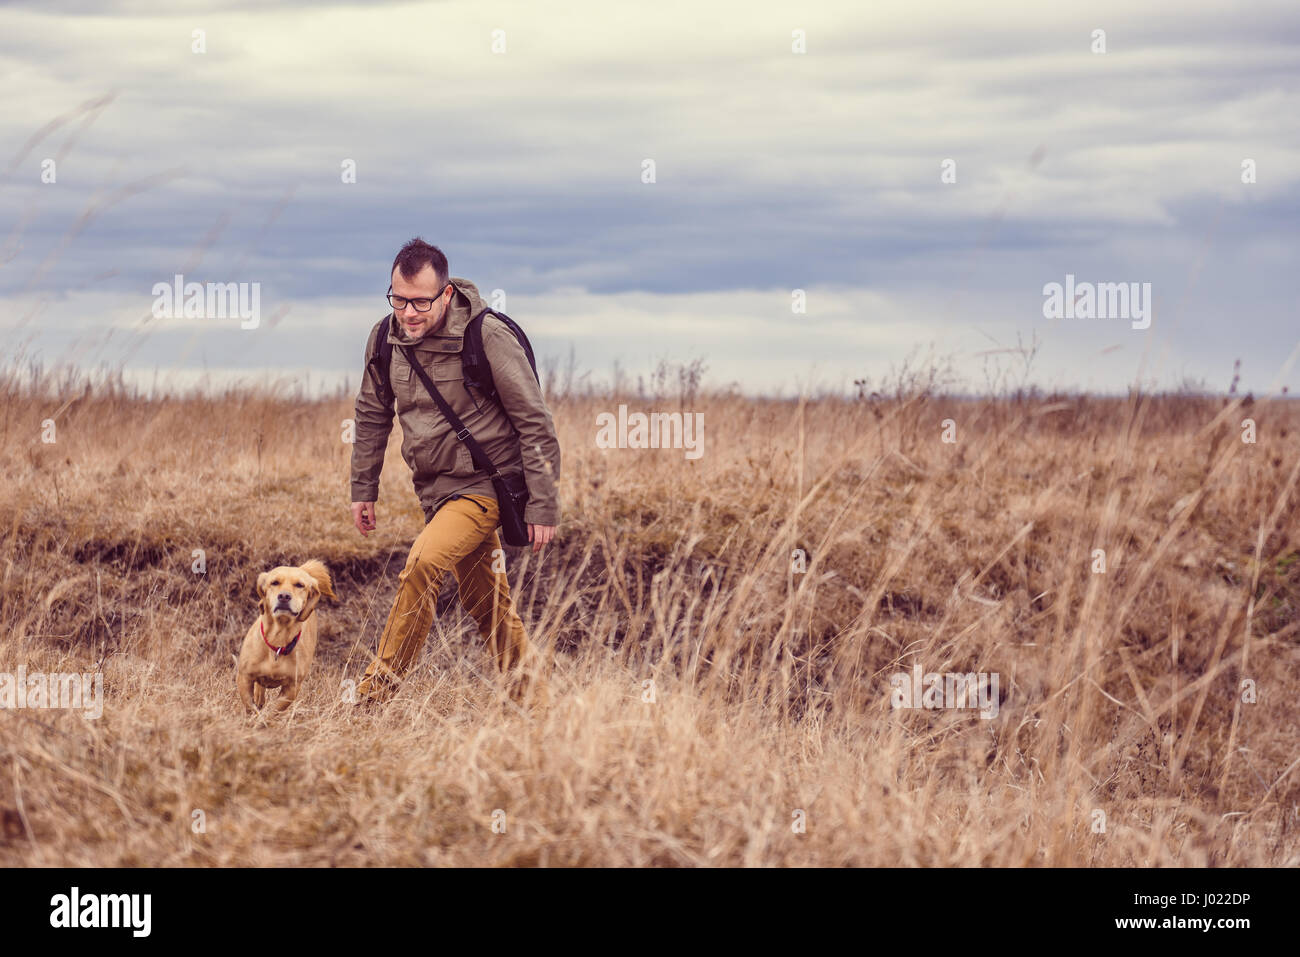 Hiker and small yellow dog walking in grassland on a cloudy day - Stock Image